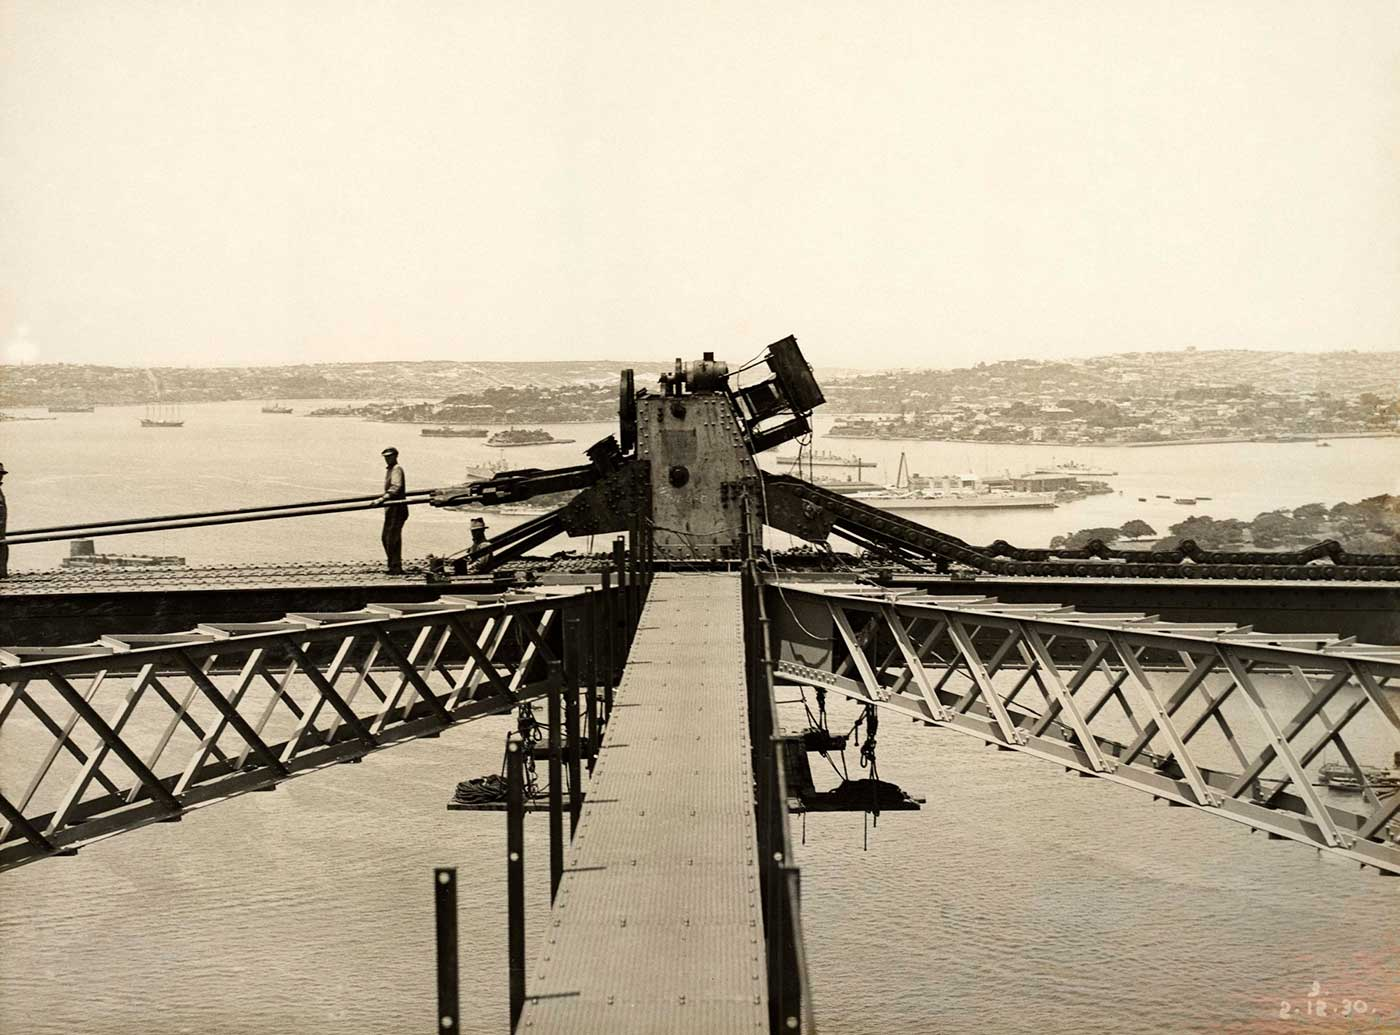 Workers on top of a section of the Sydney Harbour Bridge. - click to view larger image